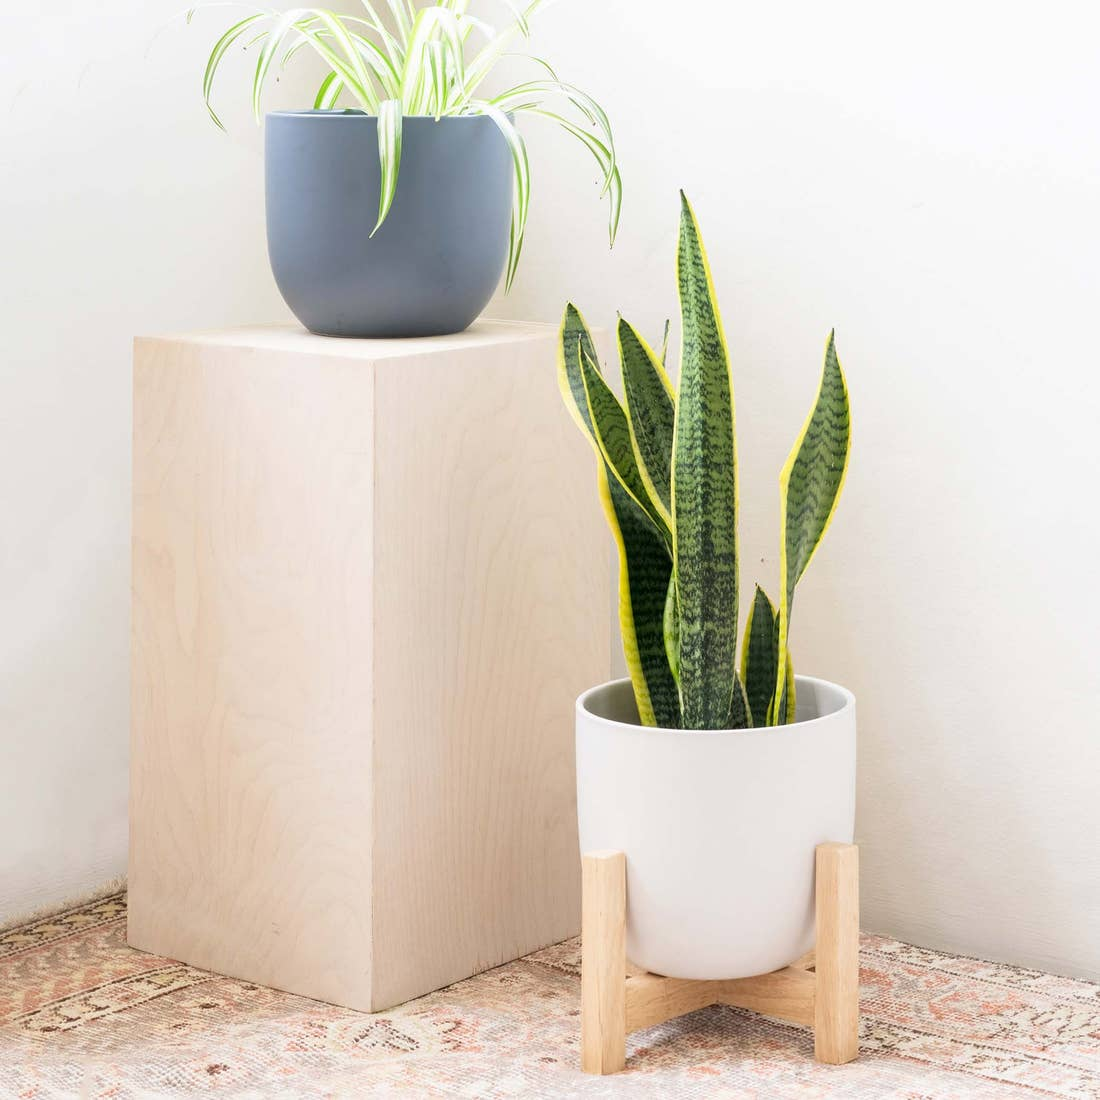 Contour Ceramic Planter in Blue Indigo